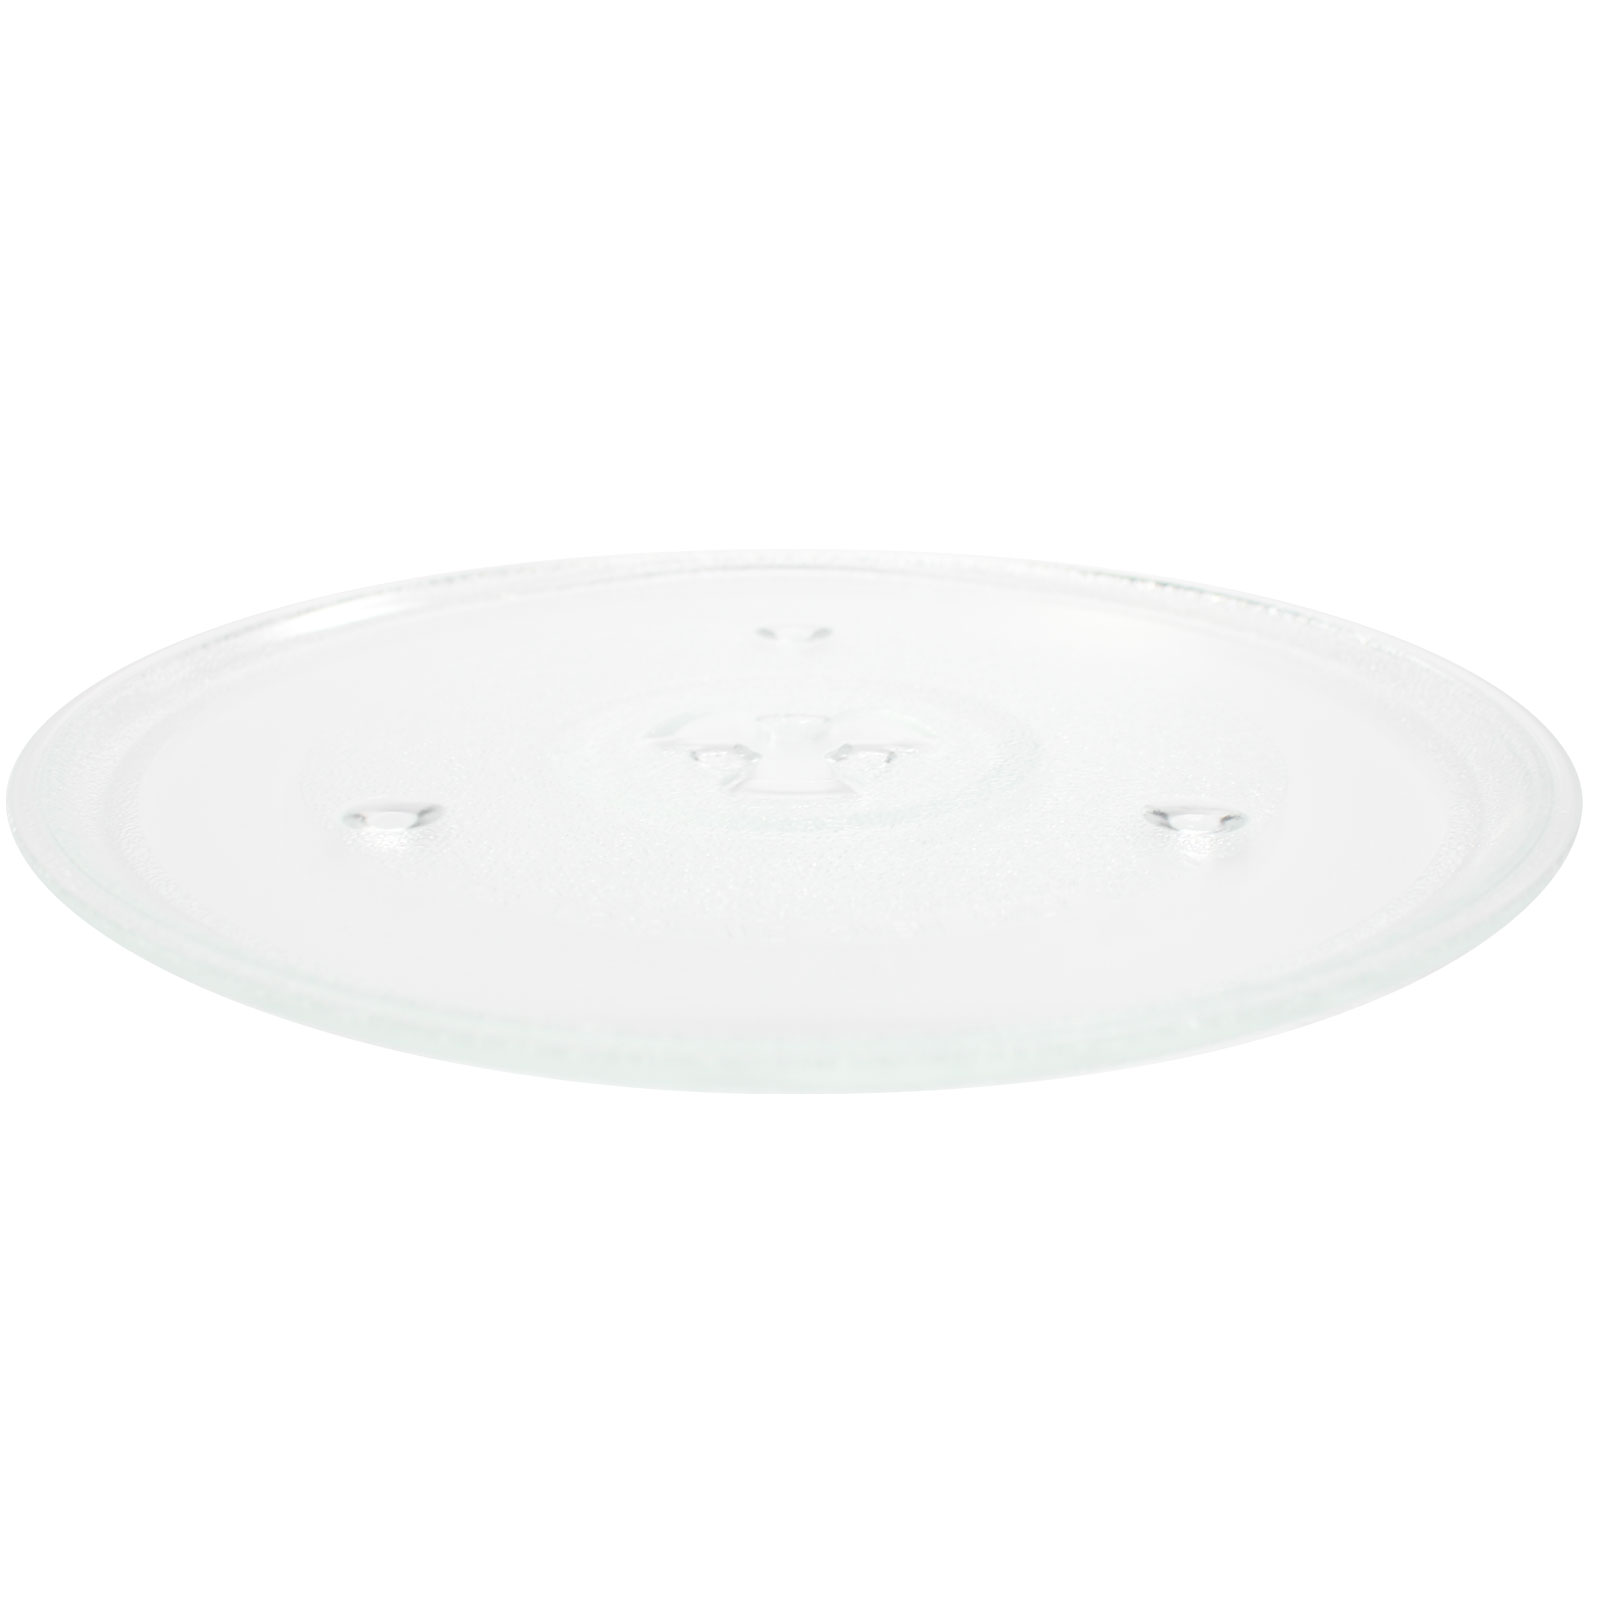 replacement hamilton beach hbp90d23 microwave glass plate compatible hamilton beach 252100500497 microwave glass turntable tray 10 1 2 270mm